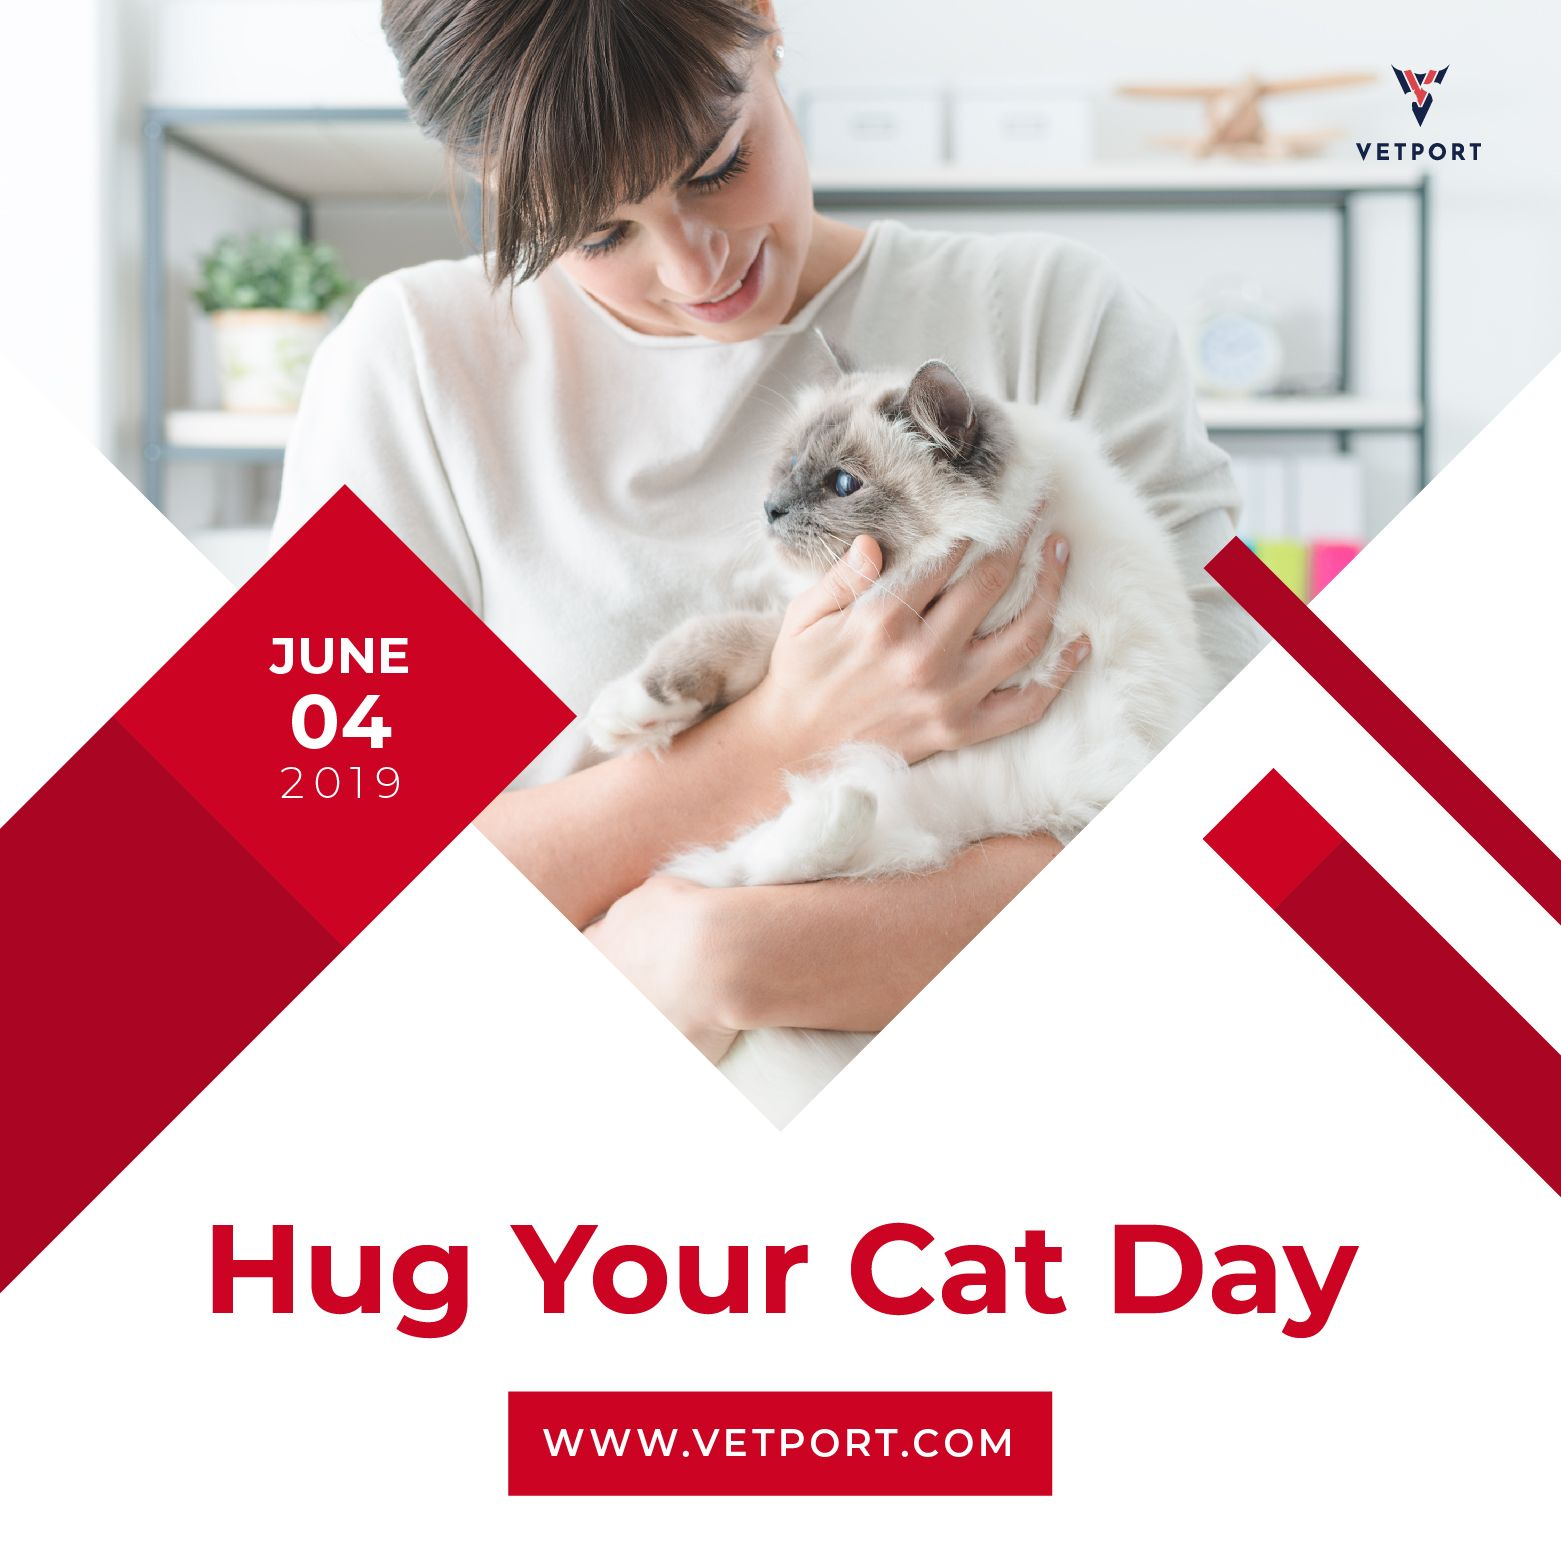 Hug Your Cat Day June 4, 2019 TuesdayThoughts